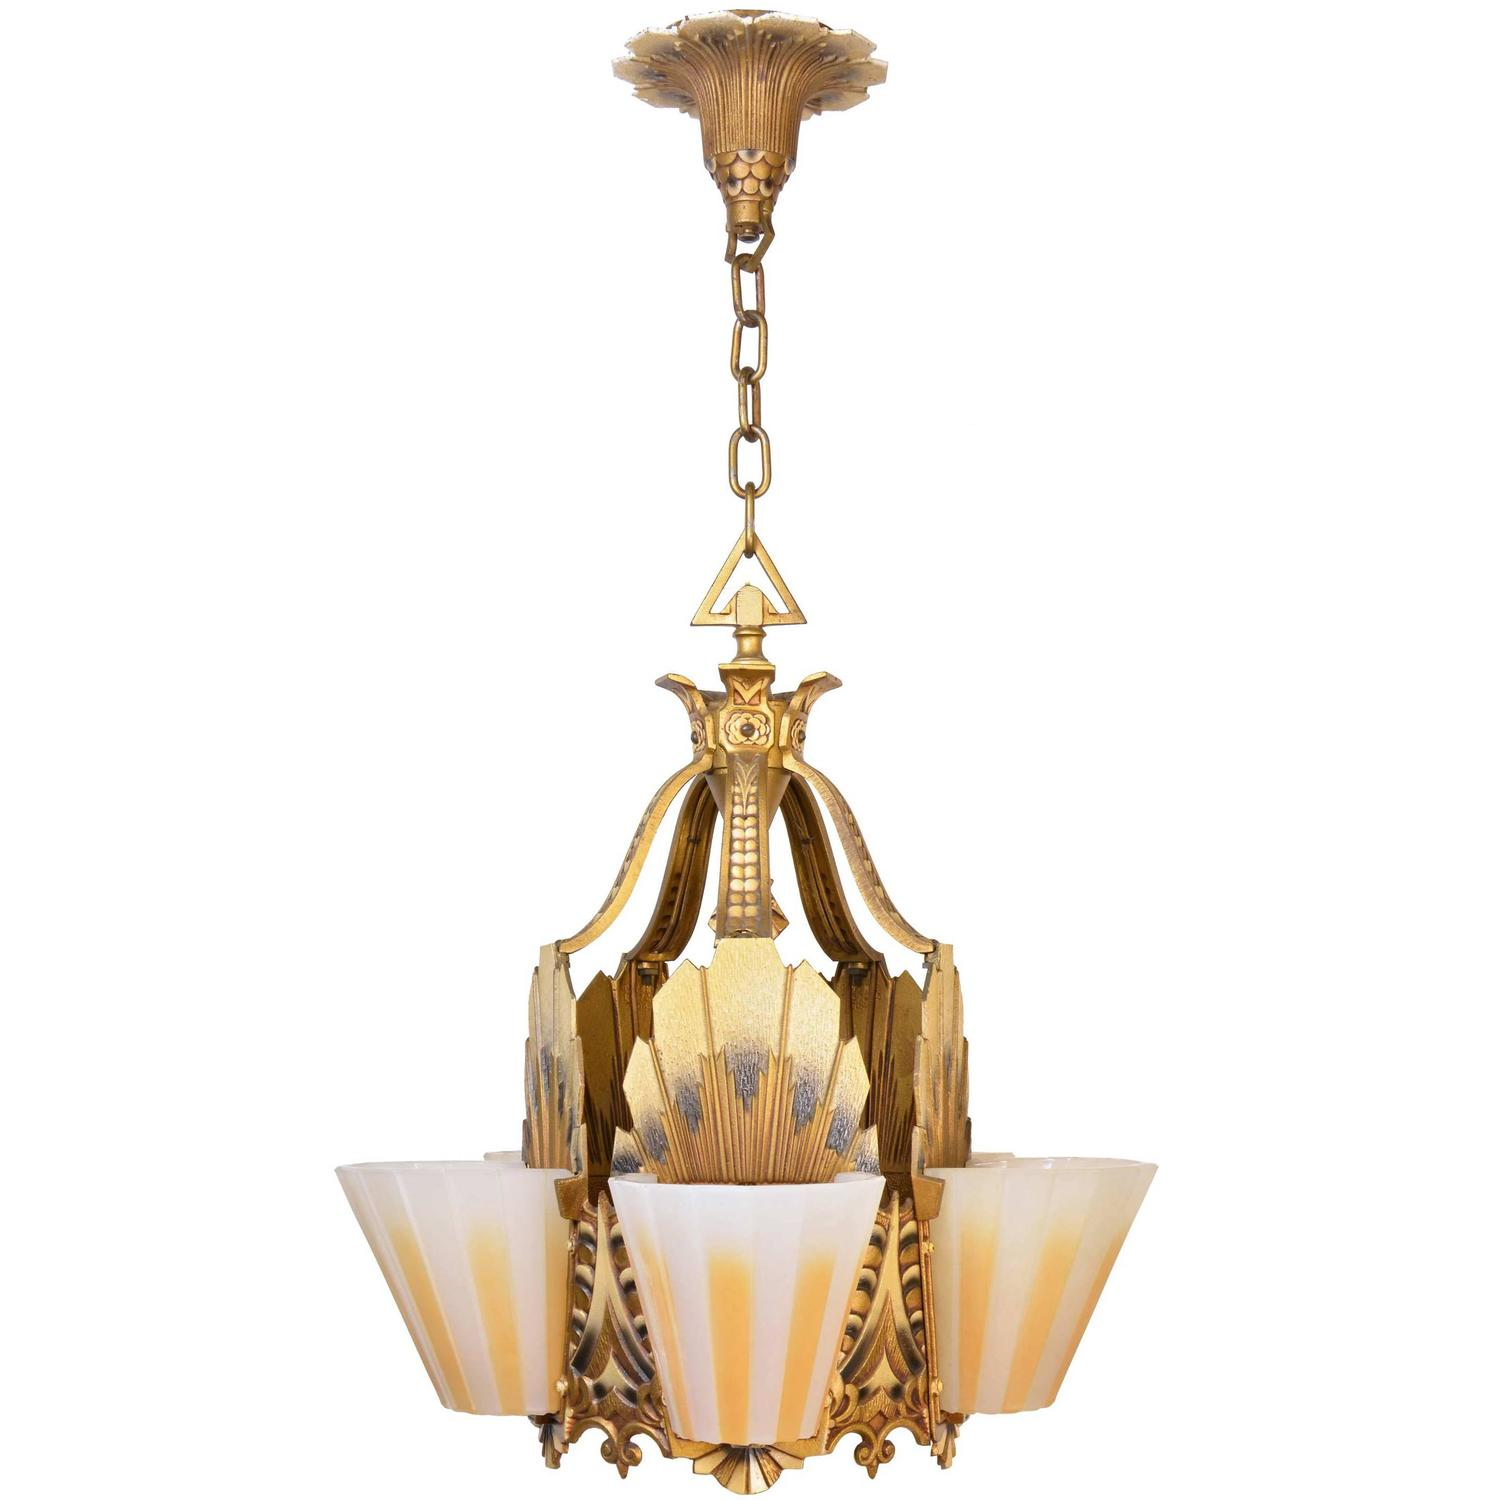 Williamsonbeardslee art deco slipper shade chandelier circa 1928 williamsonbeardslee art deco slipper shade chandelier circa 1928 at 1stdibs arubaitofo Image collections